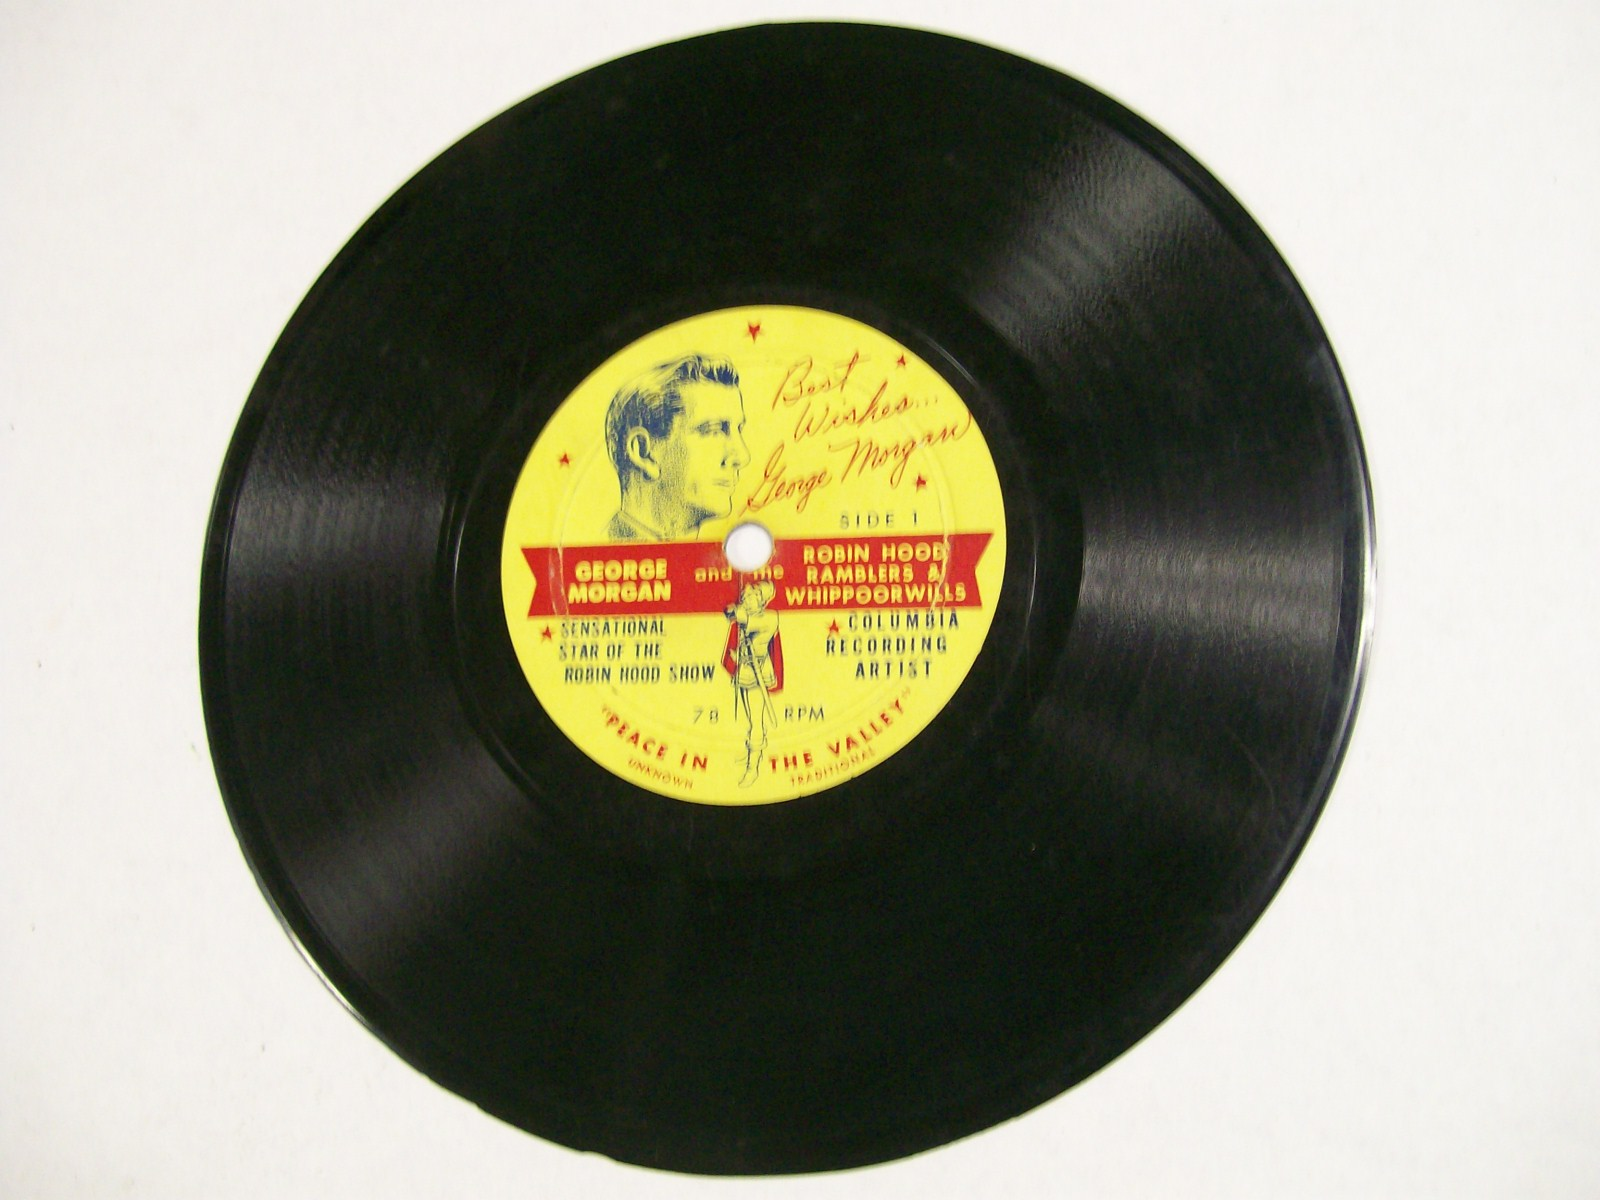 George Morgan 78 RPM Record Columbia/Robin Hood Show